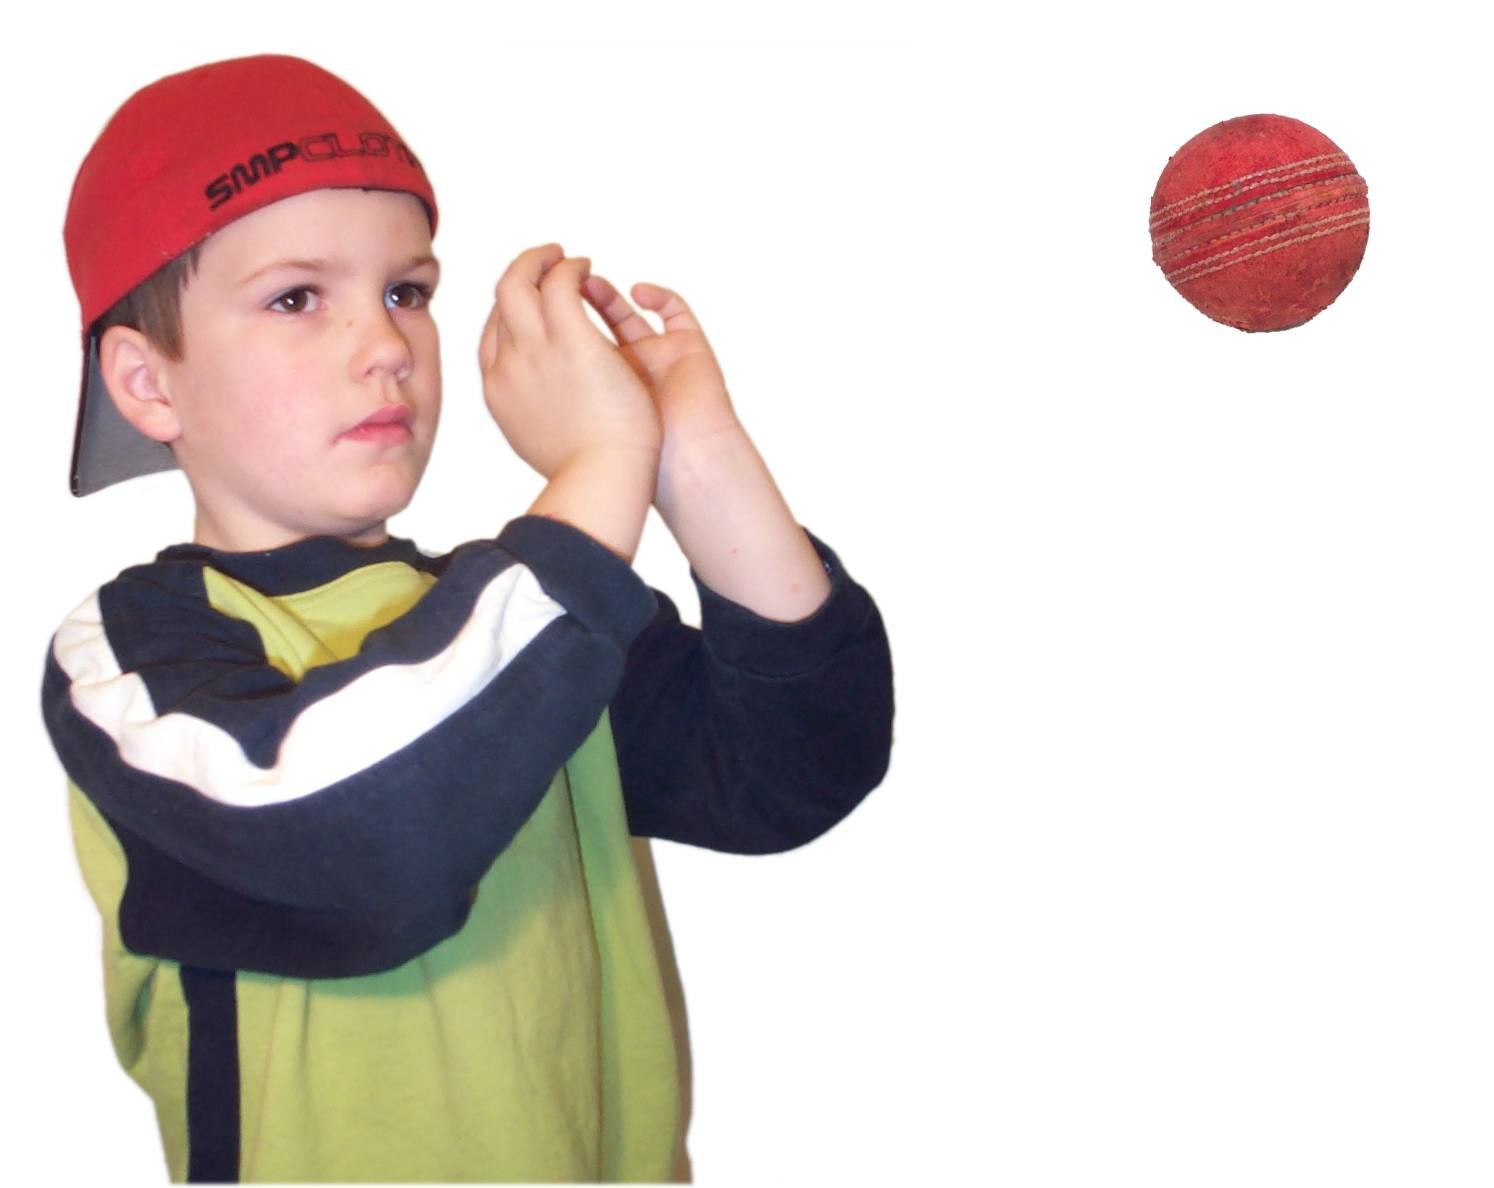 Boy catching ball2.jpg